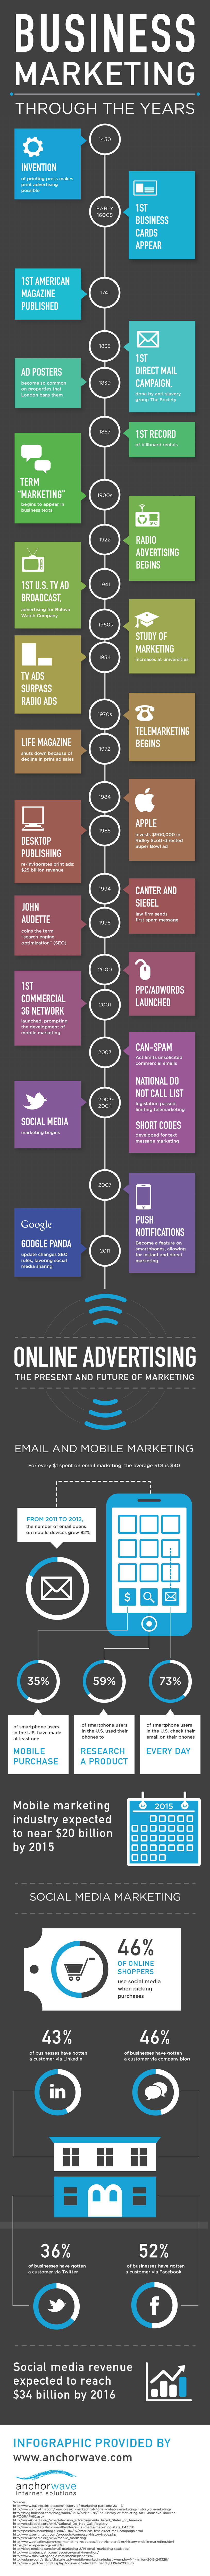 The History Of Marketing - #Infographic via #BornToBeSocial ...